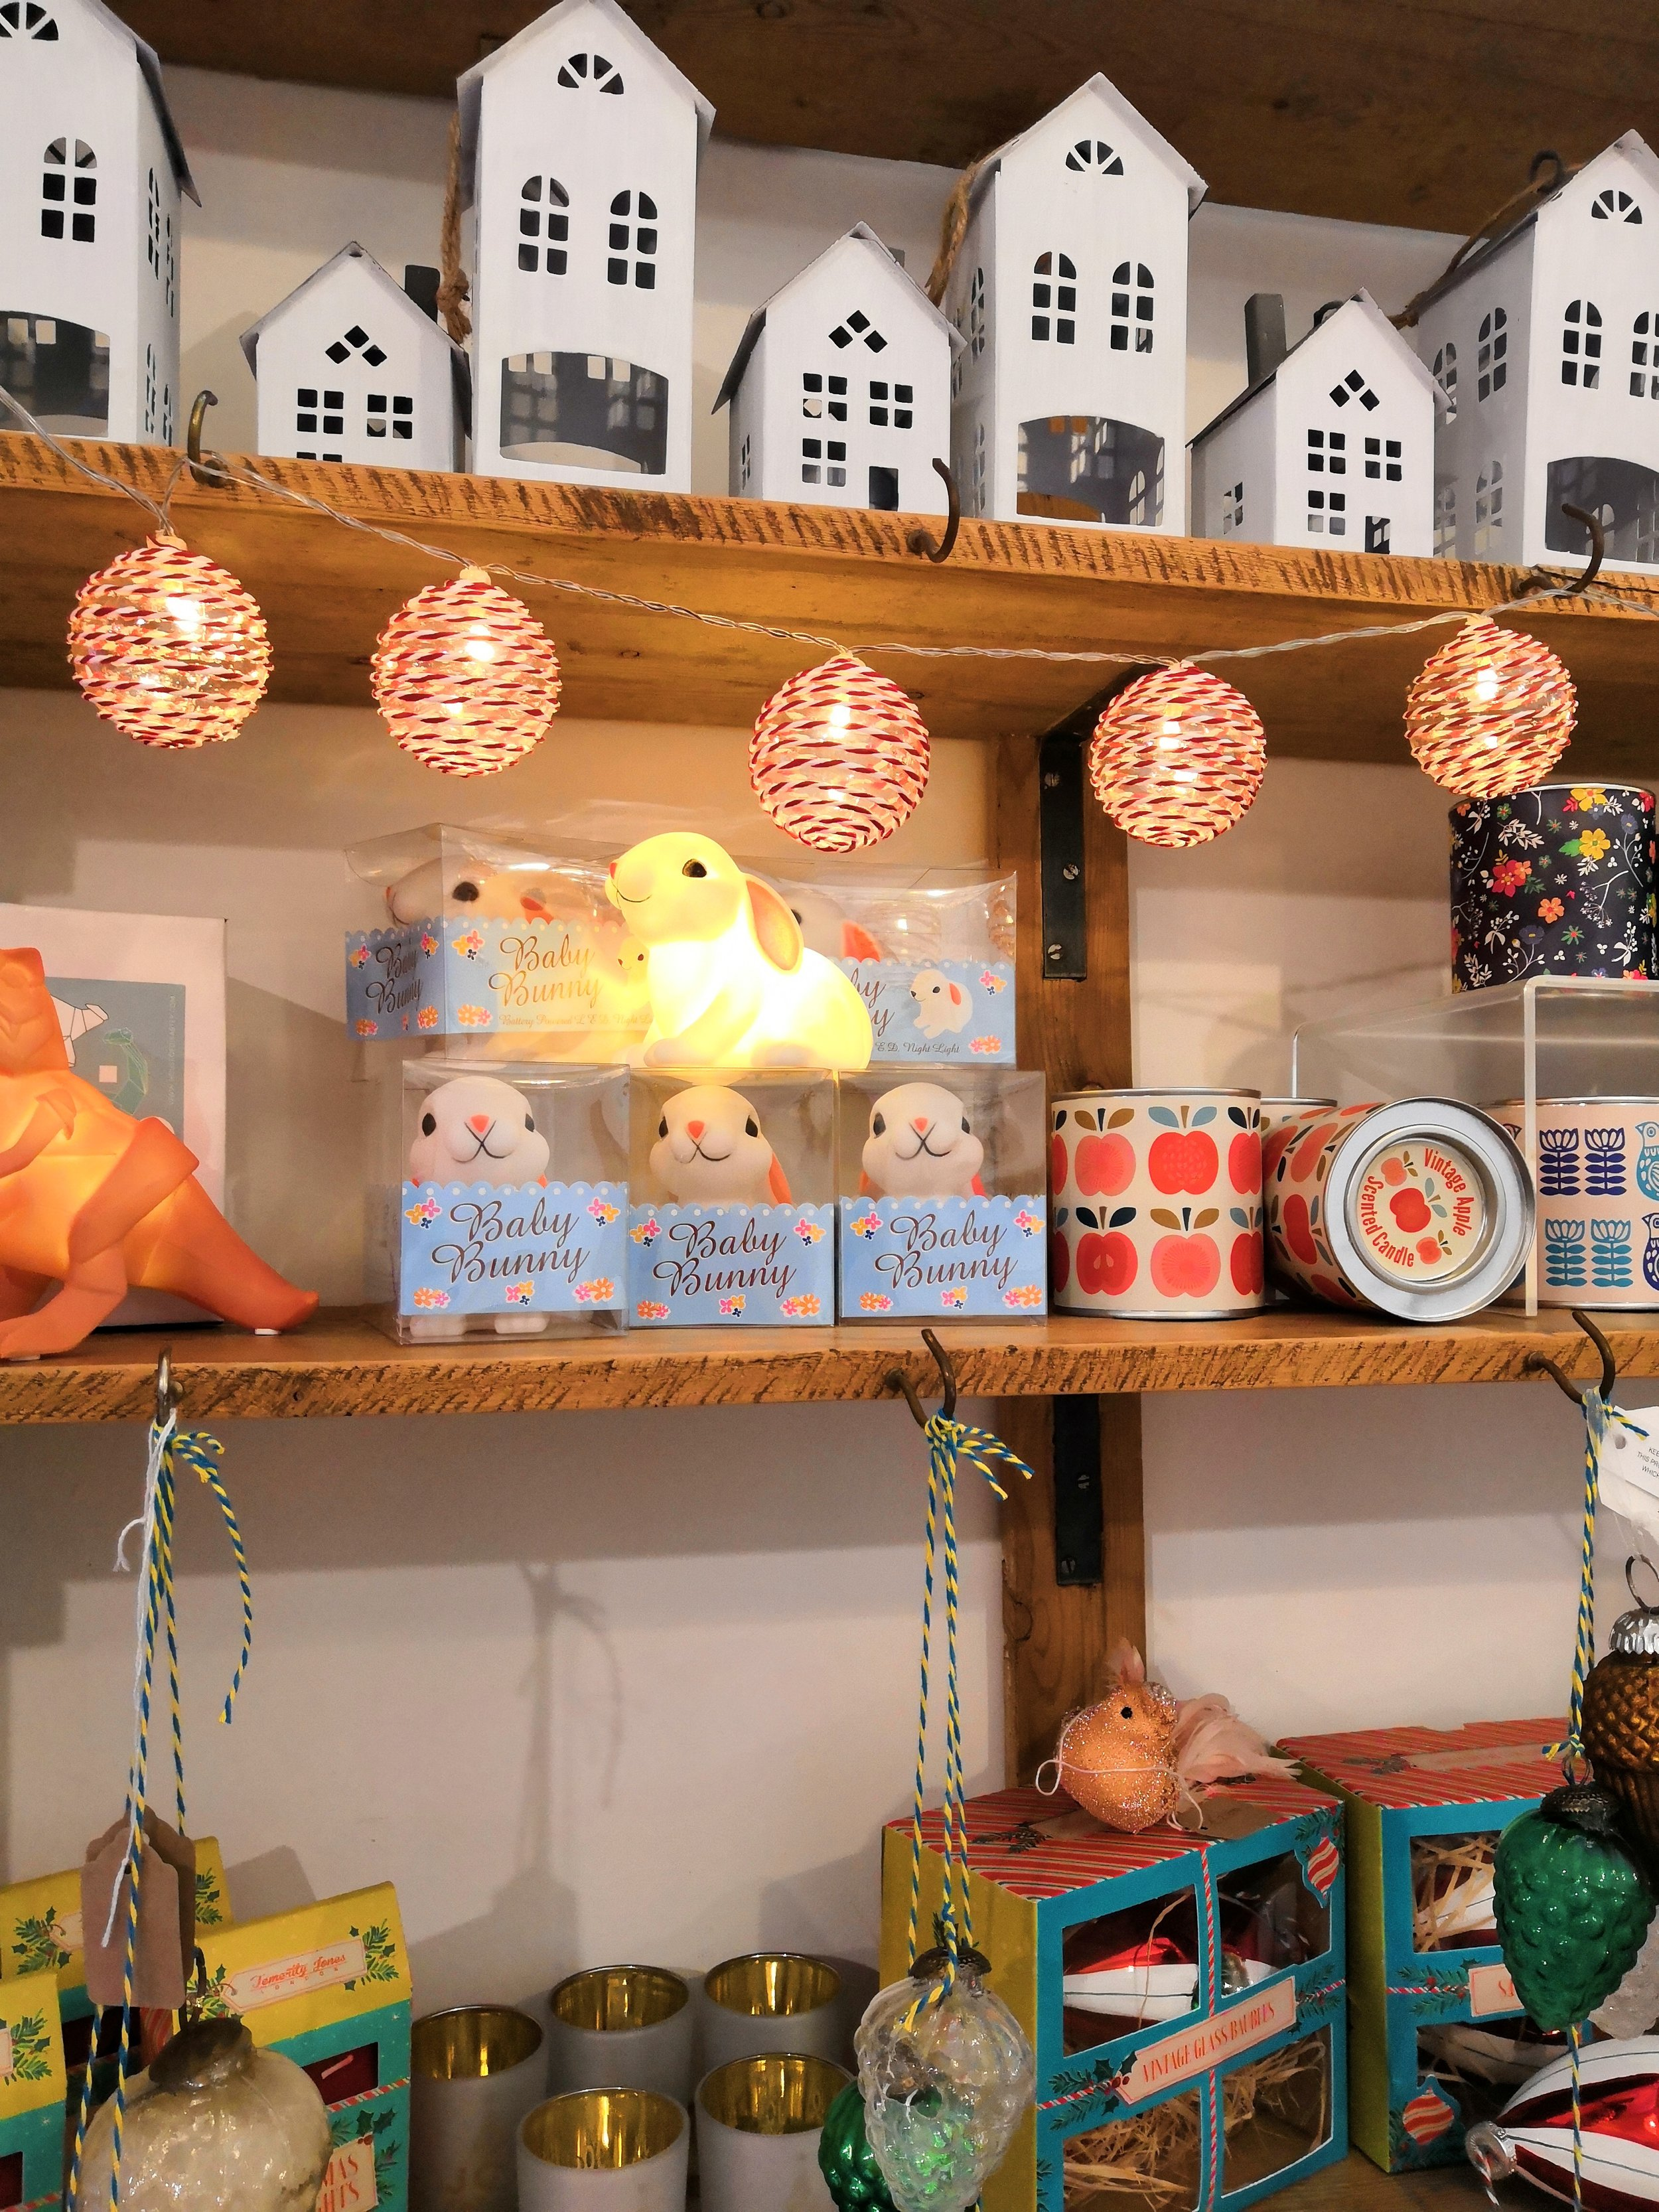 Back in stock baby bunny night lights